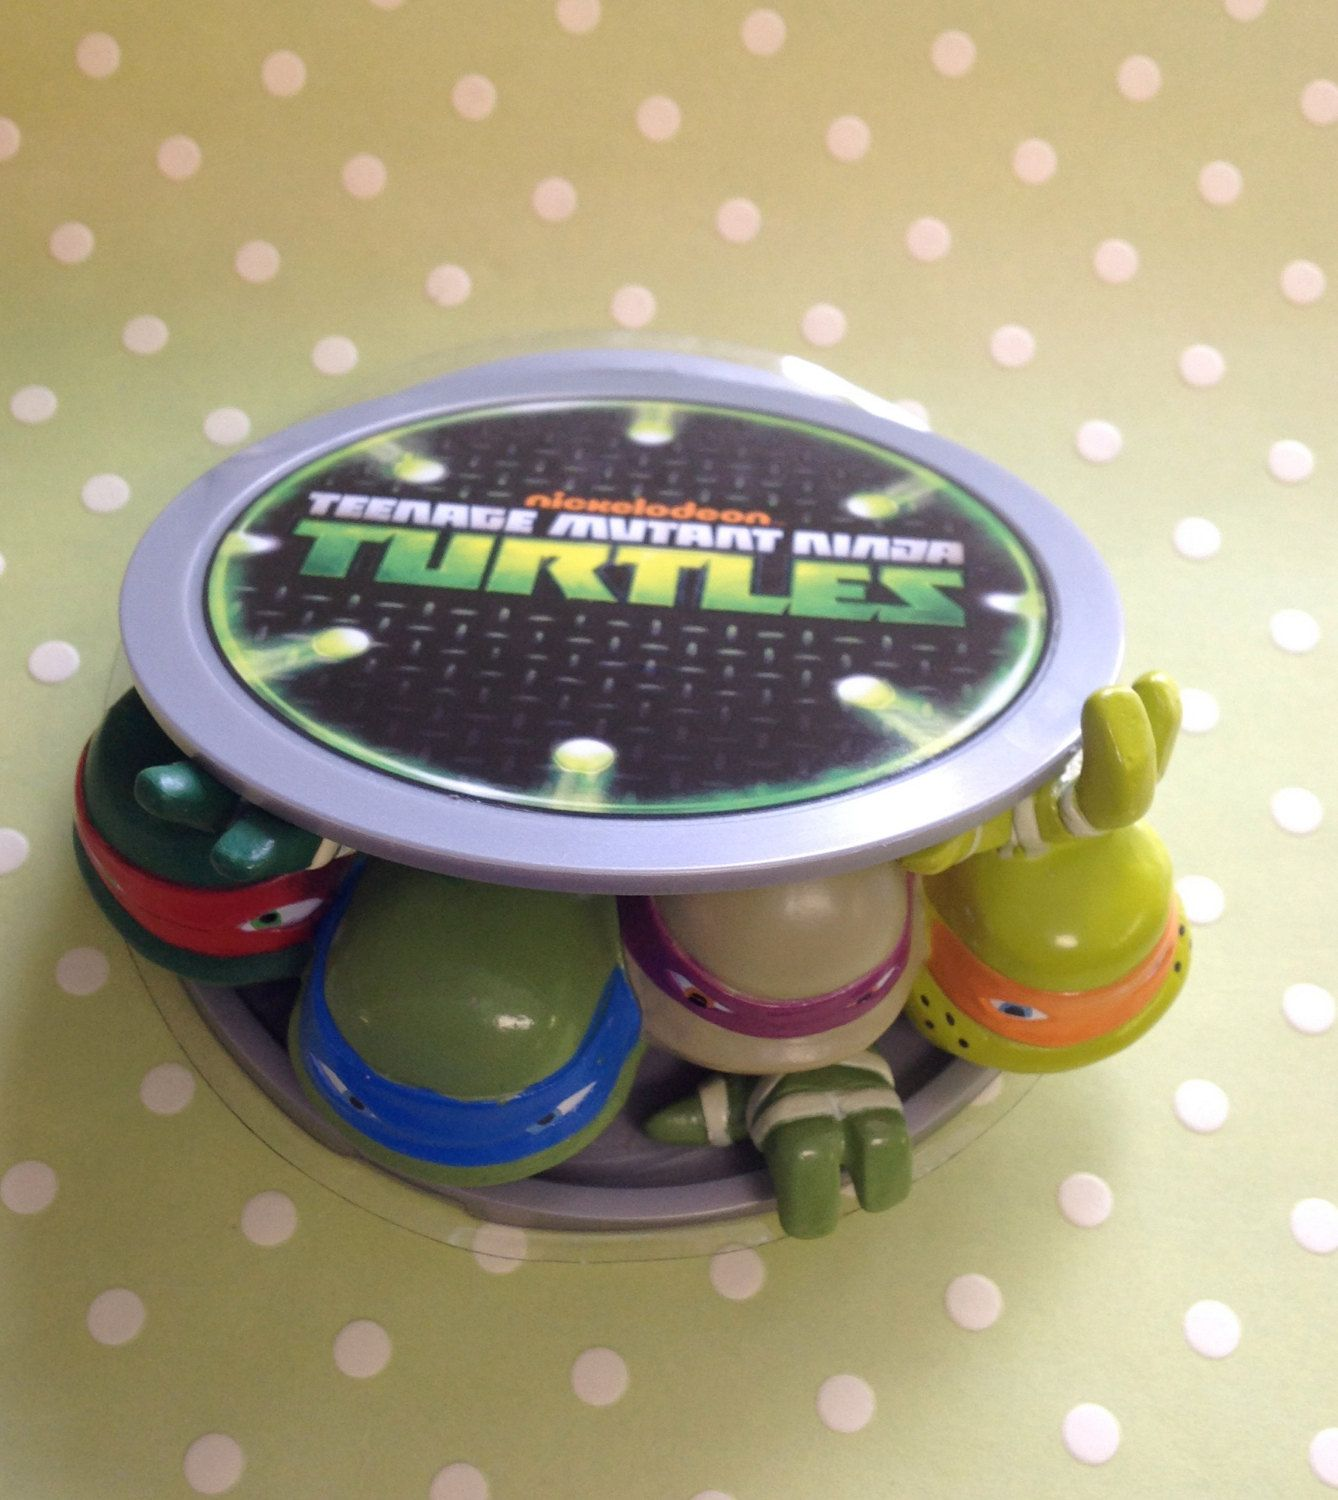 Teenage Mutant Ninja Turtle Cake Kit by ChristyMaries83 on Etsy